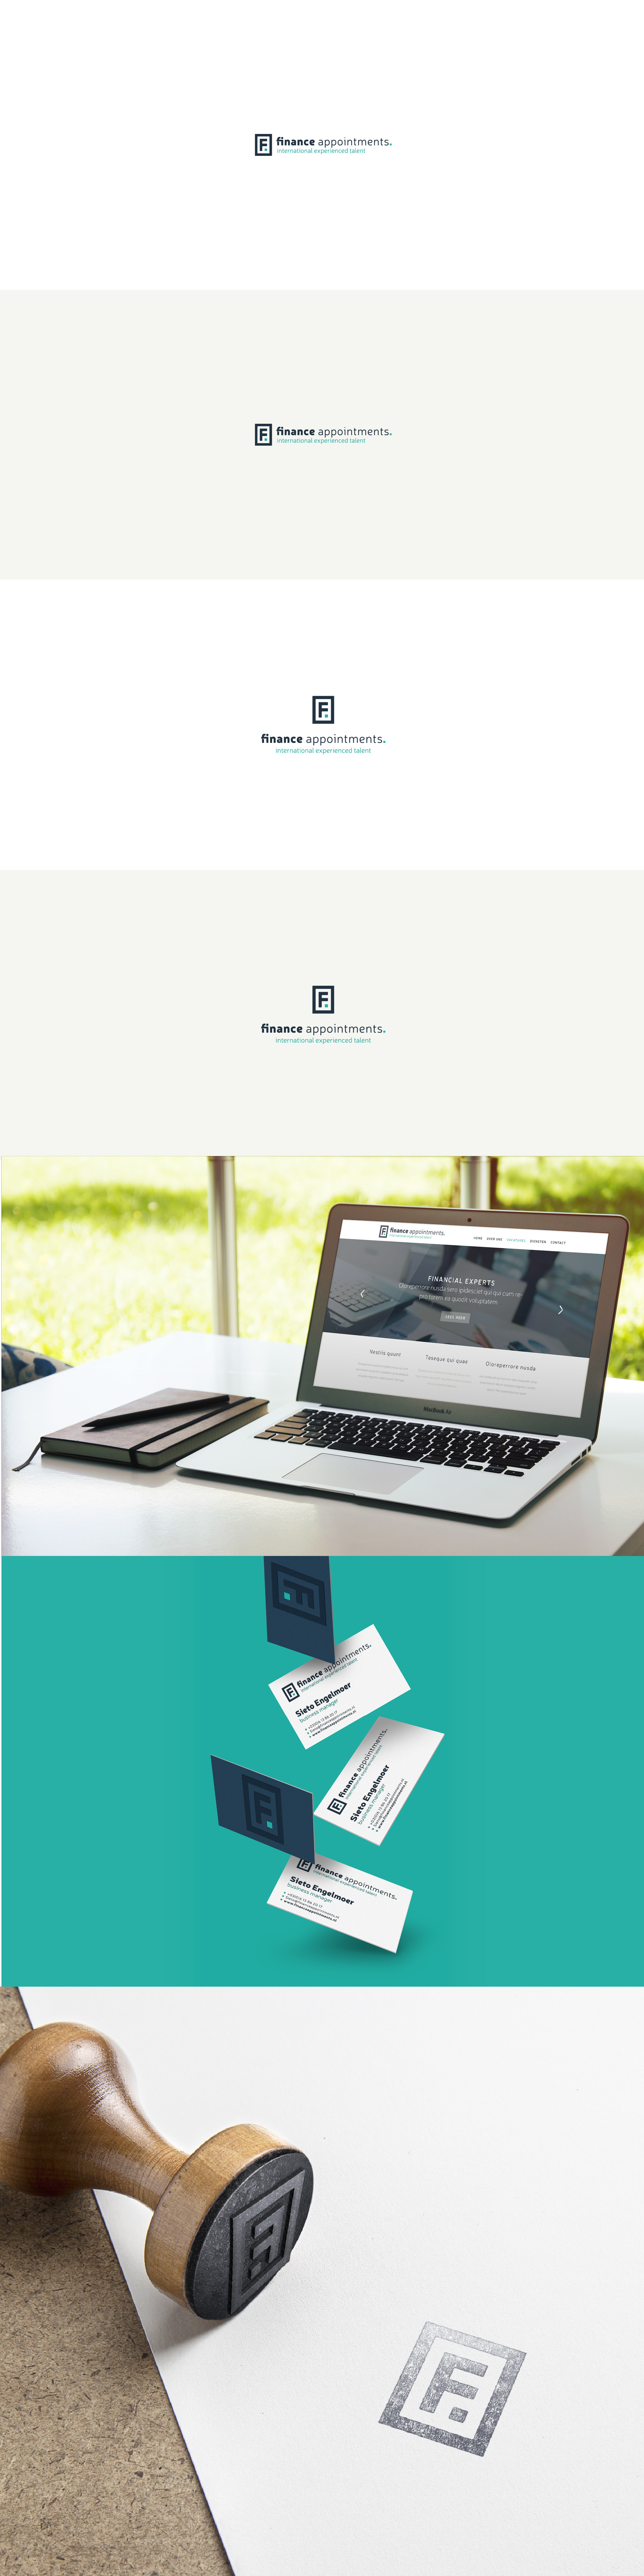 Finance-Appointment-site